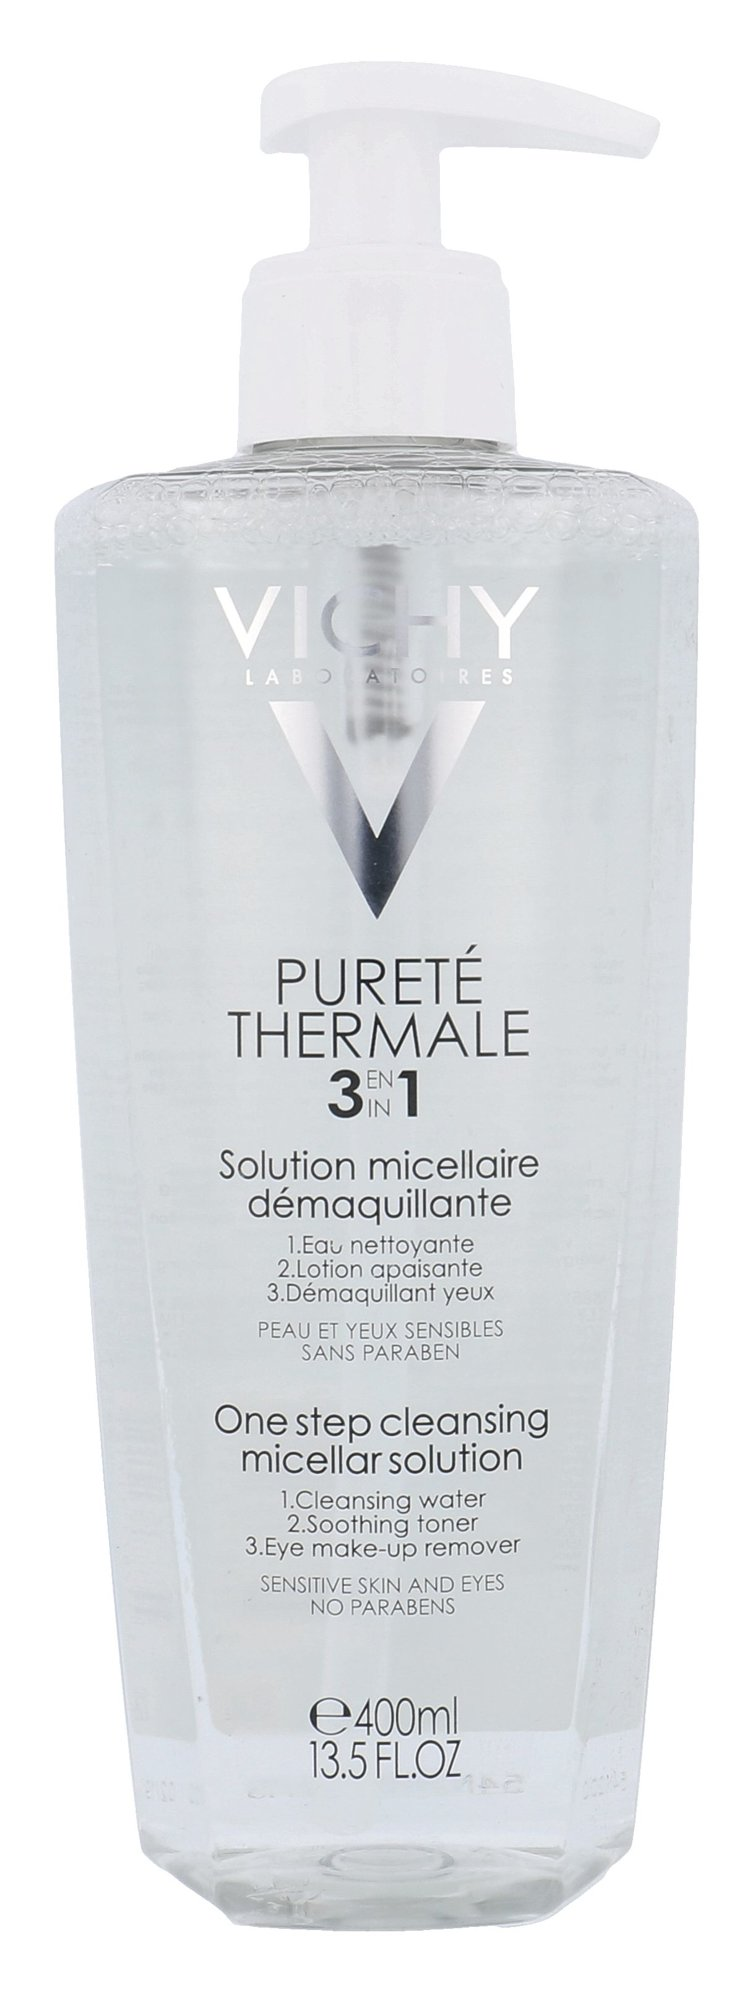 Vichy Purete Thermale Cosmetic 400ml